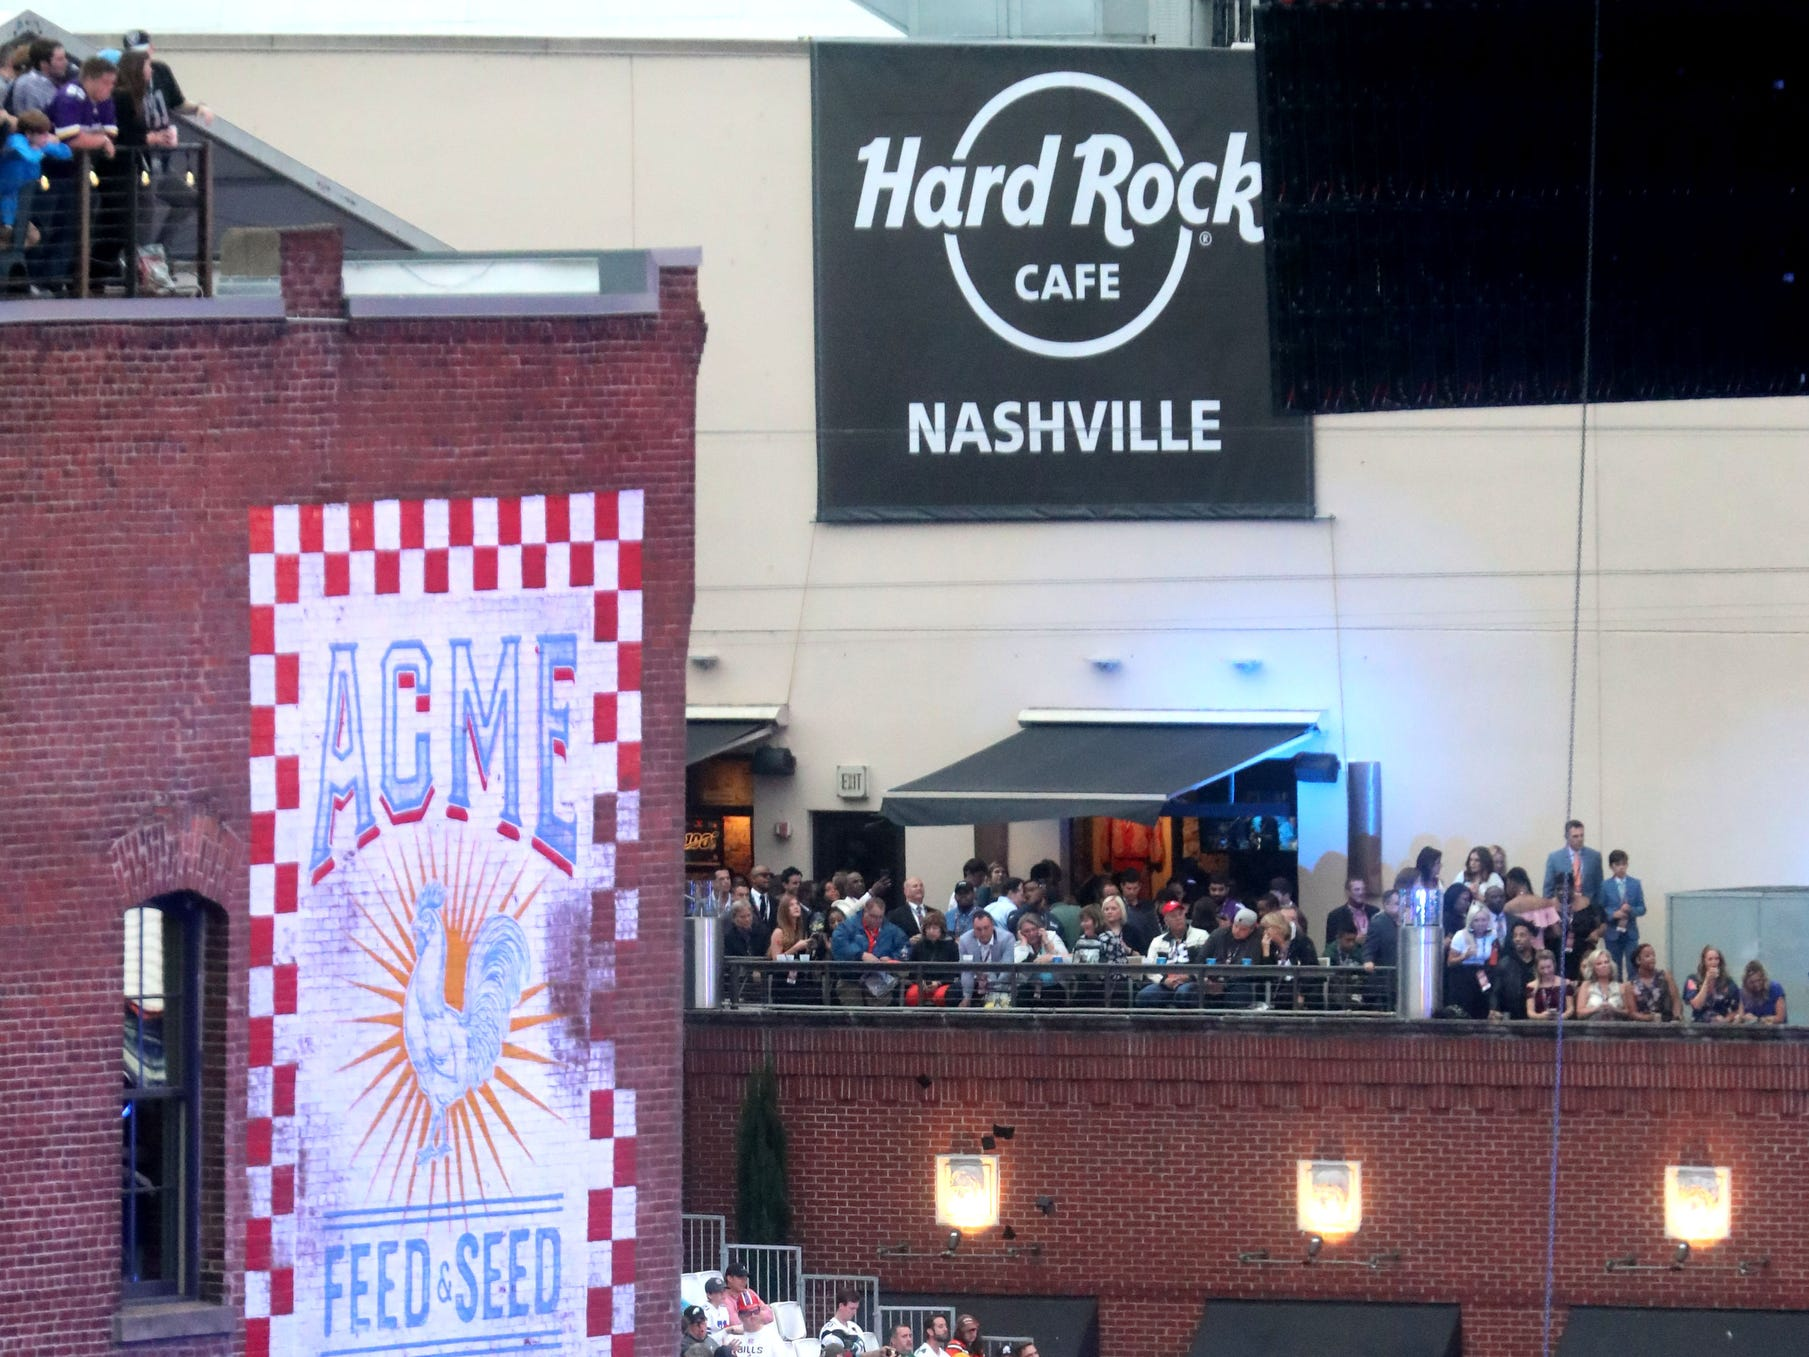 Fans hang out on rooftops and in front of the stage on Lower Broadway as the first round of the NFL Draft begins on Thursday, April 25, 2019, in Nashville, Tennessee.